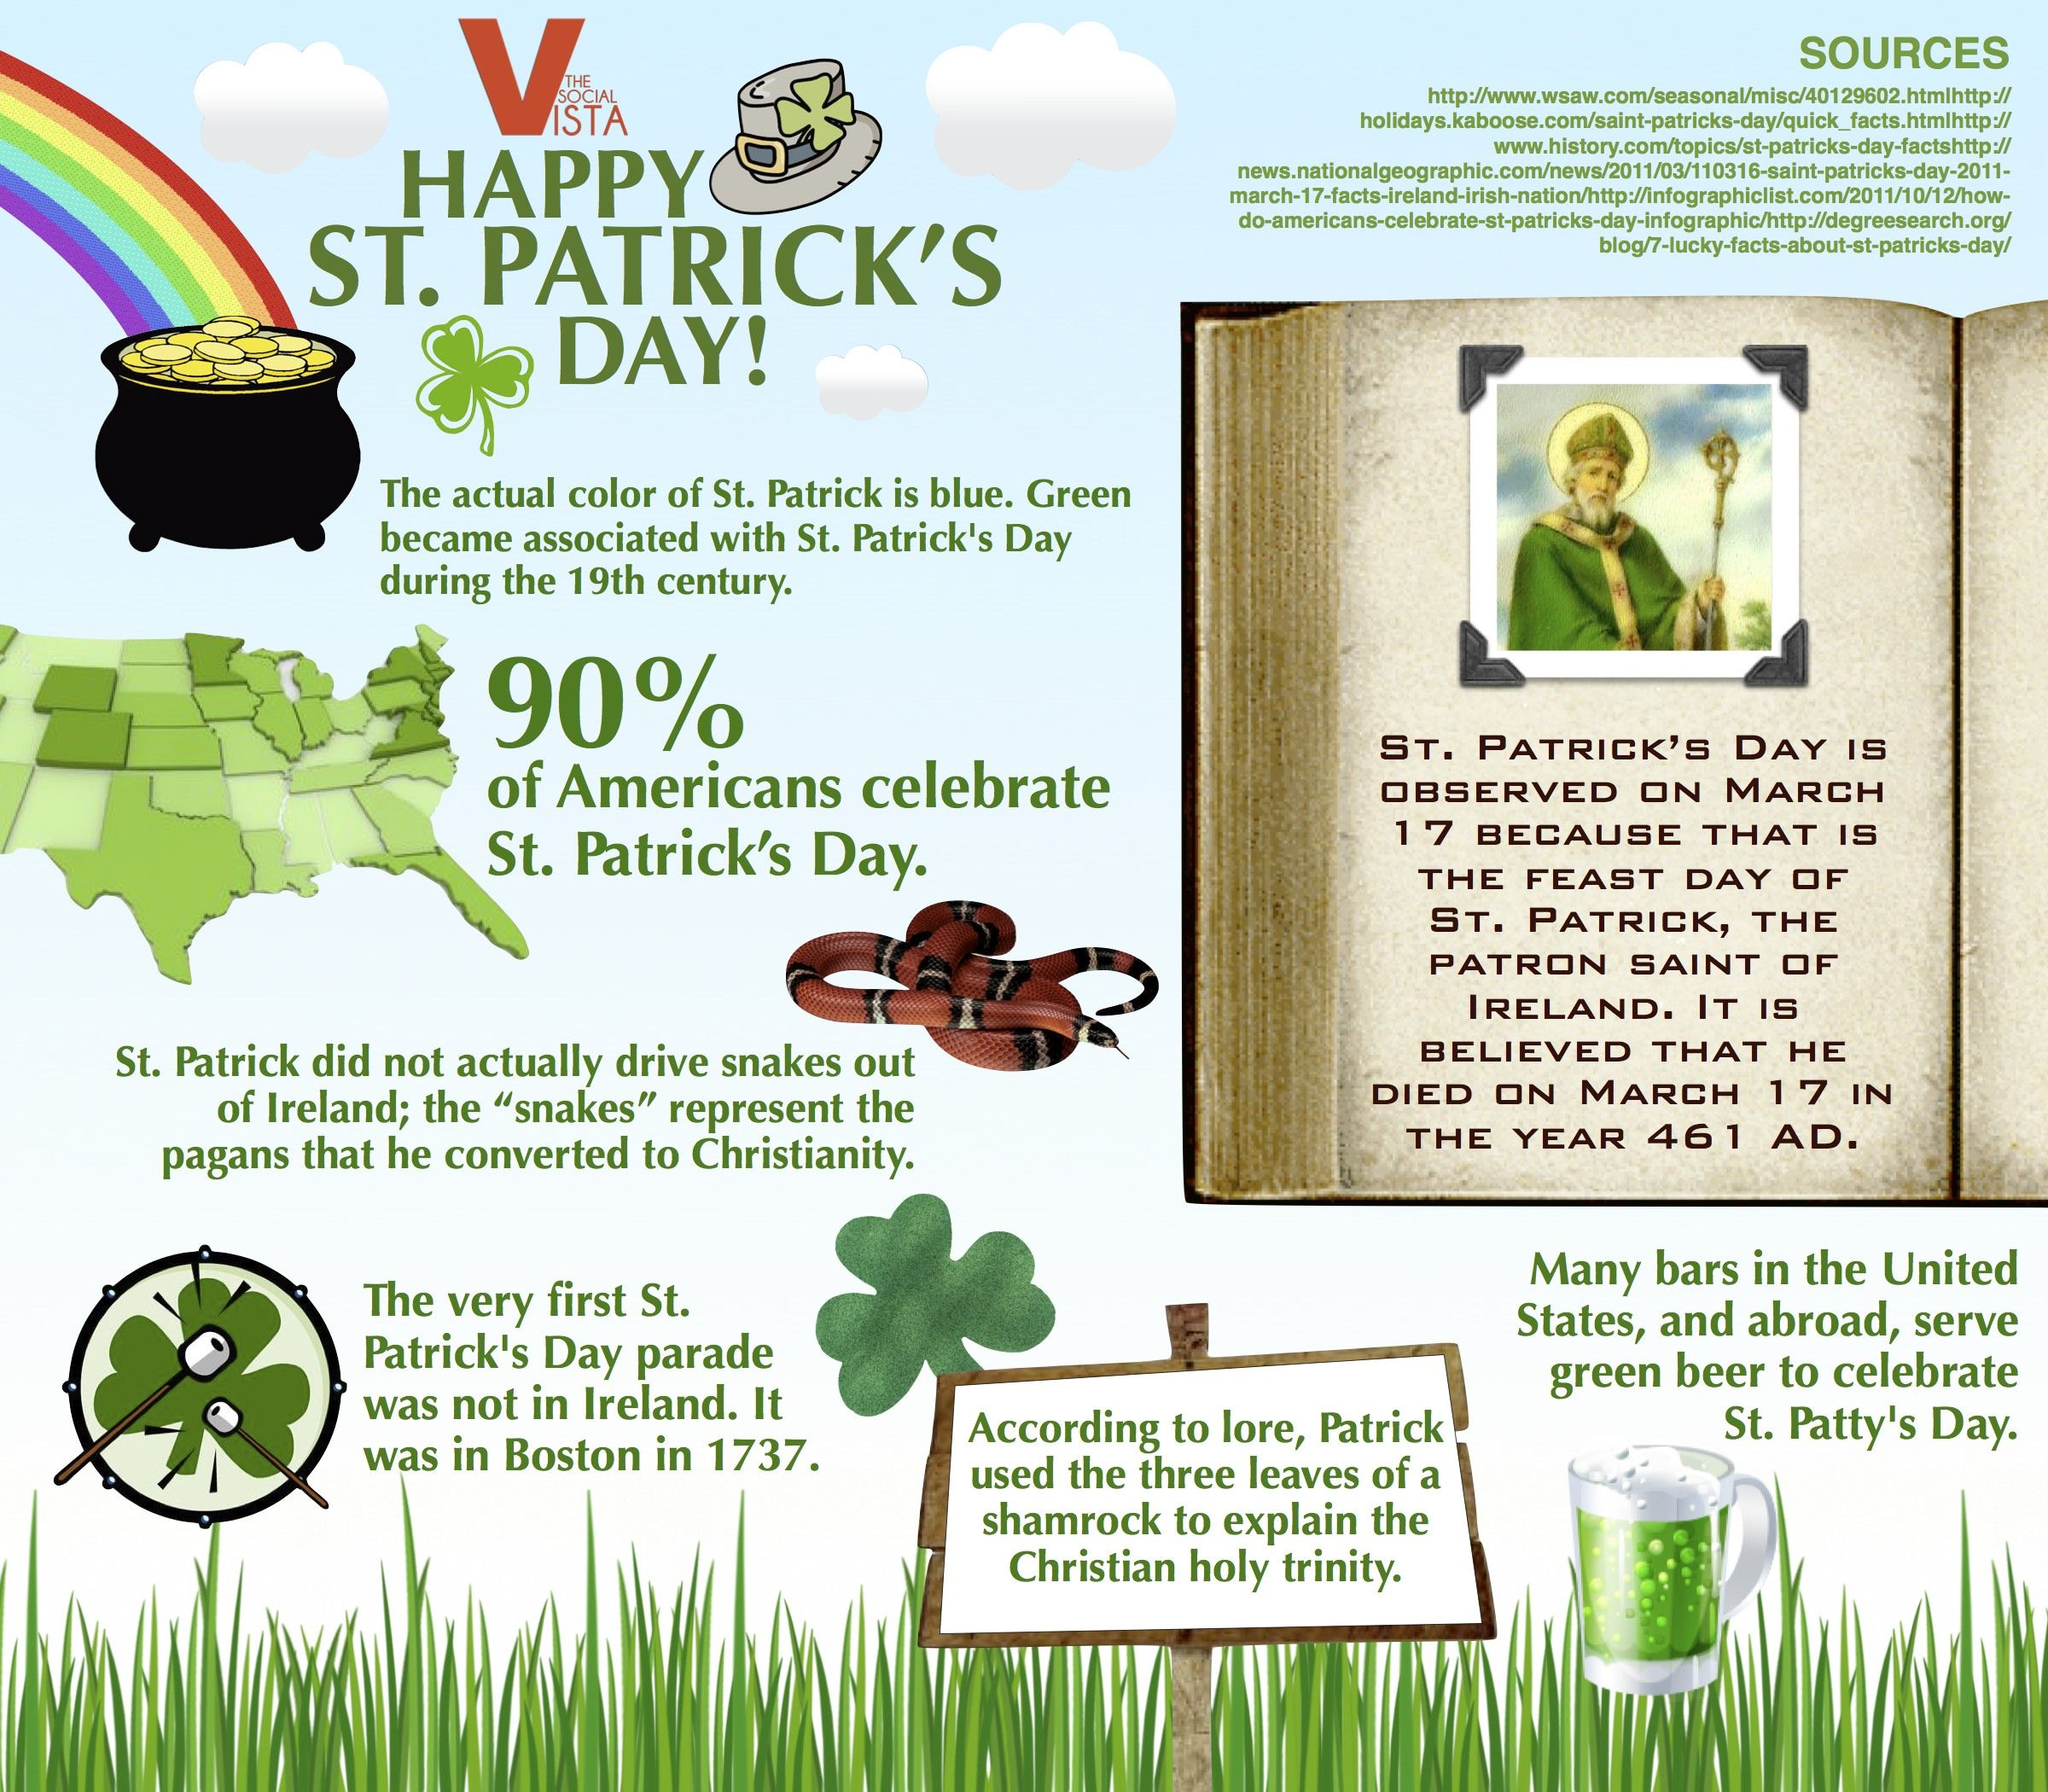 Uncategorized St Patricks Day Information some fun facts about st patricks day top of the morn day